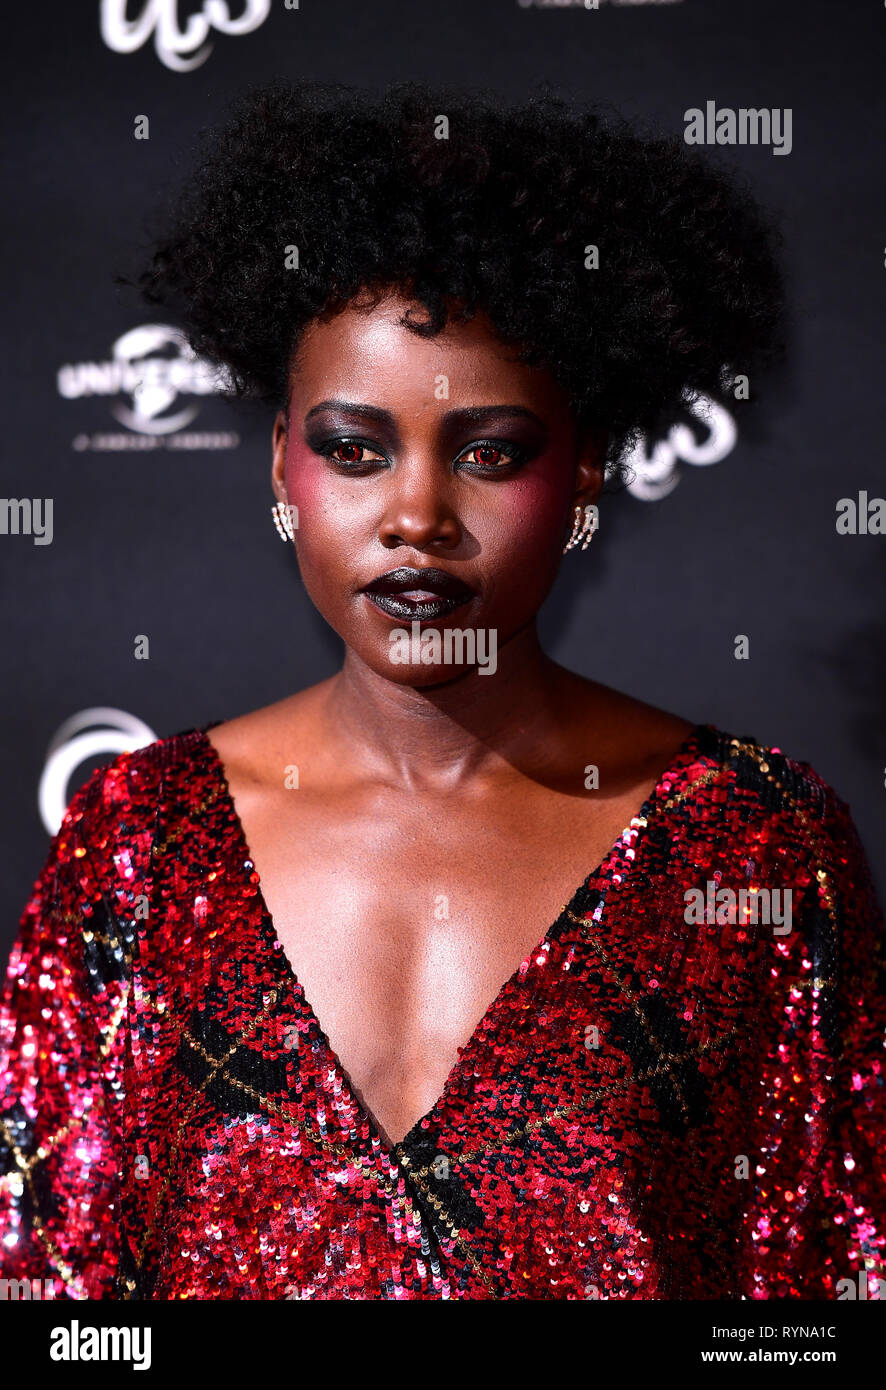 Lupita Nyong O Attending An Exclusive Screening Of Us Mr Peele S New Film At Picturehouse Central On Shaftesbury Avenue London Stock Photo Alamy